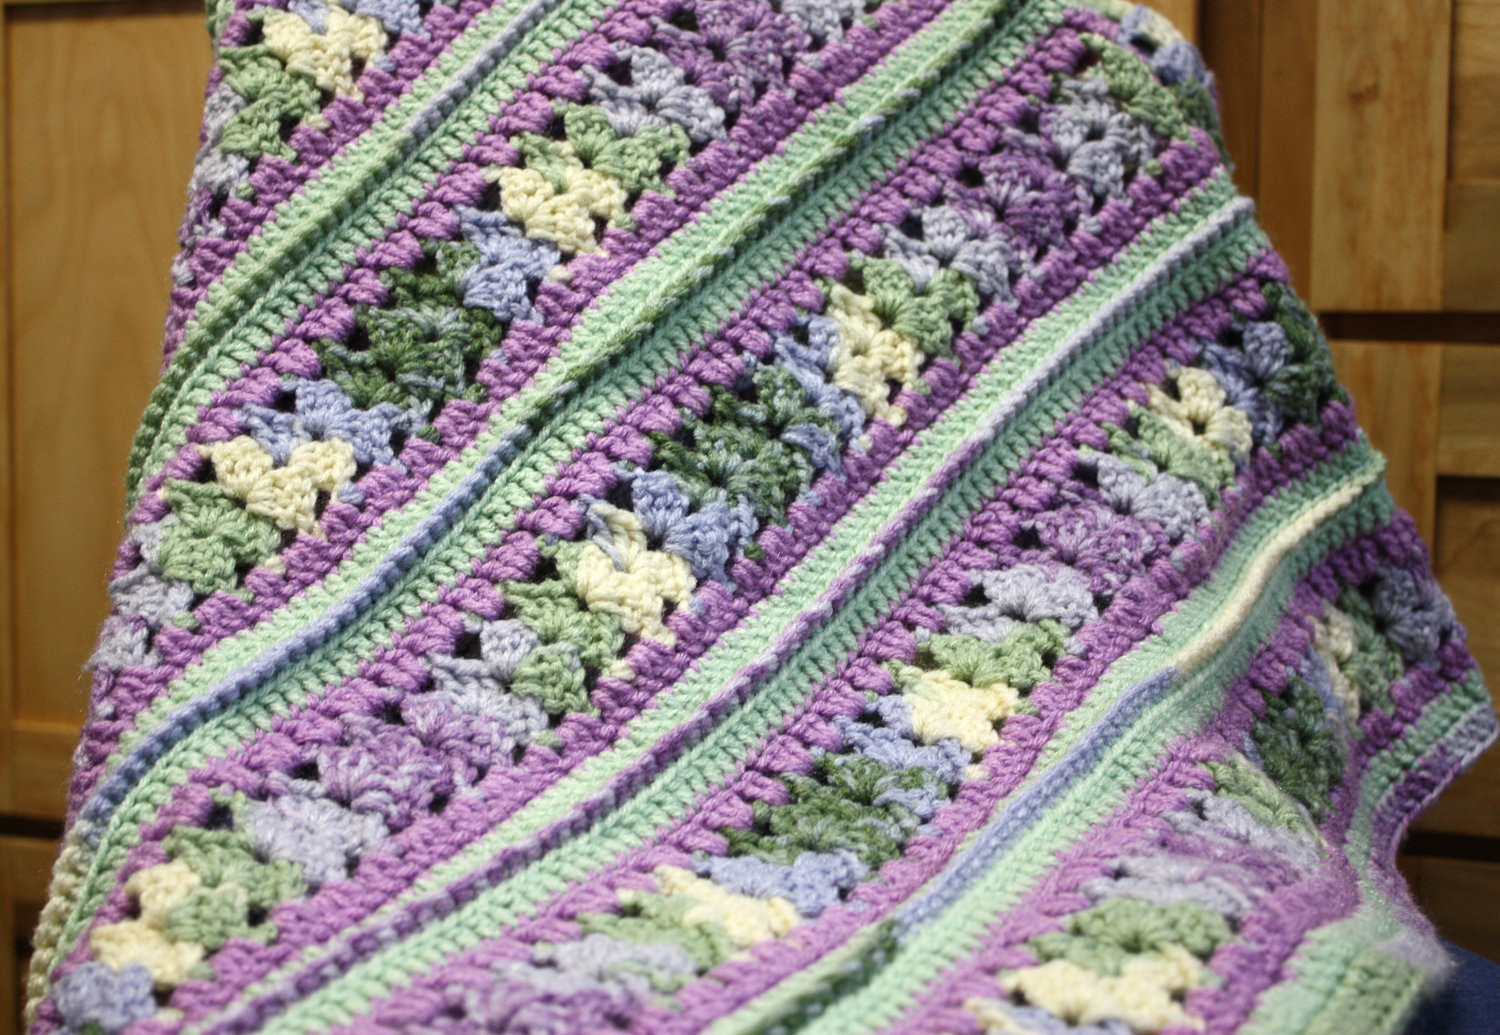 Best Of Crochet Afghan Patterns Mile A Minute Dancox for Free Mile A Minute Crochet Patterns Of Marvelous 50 Pics Free Mile A Minute Crochet Patterns